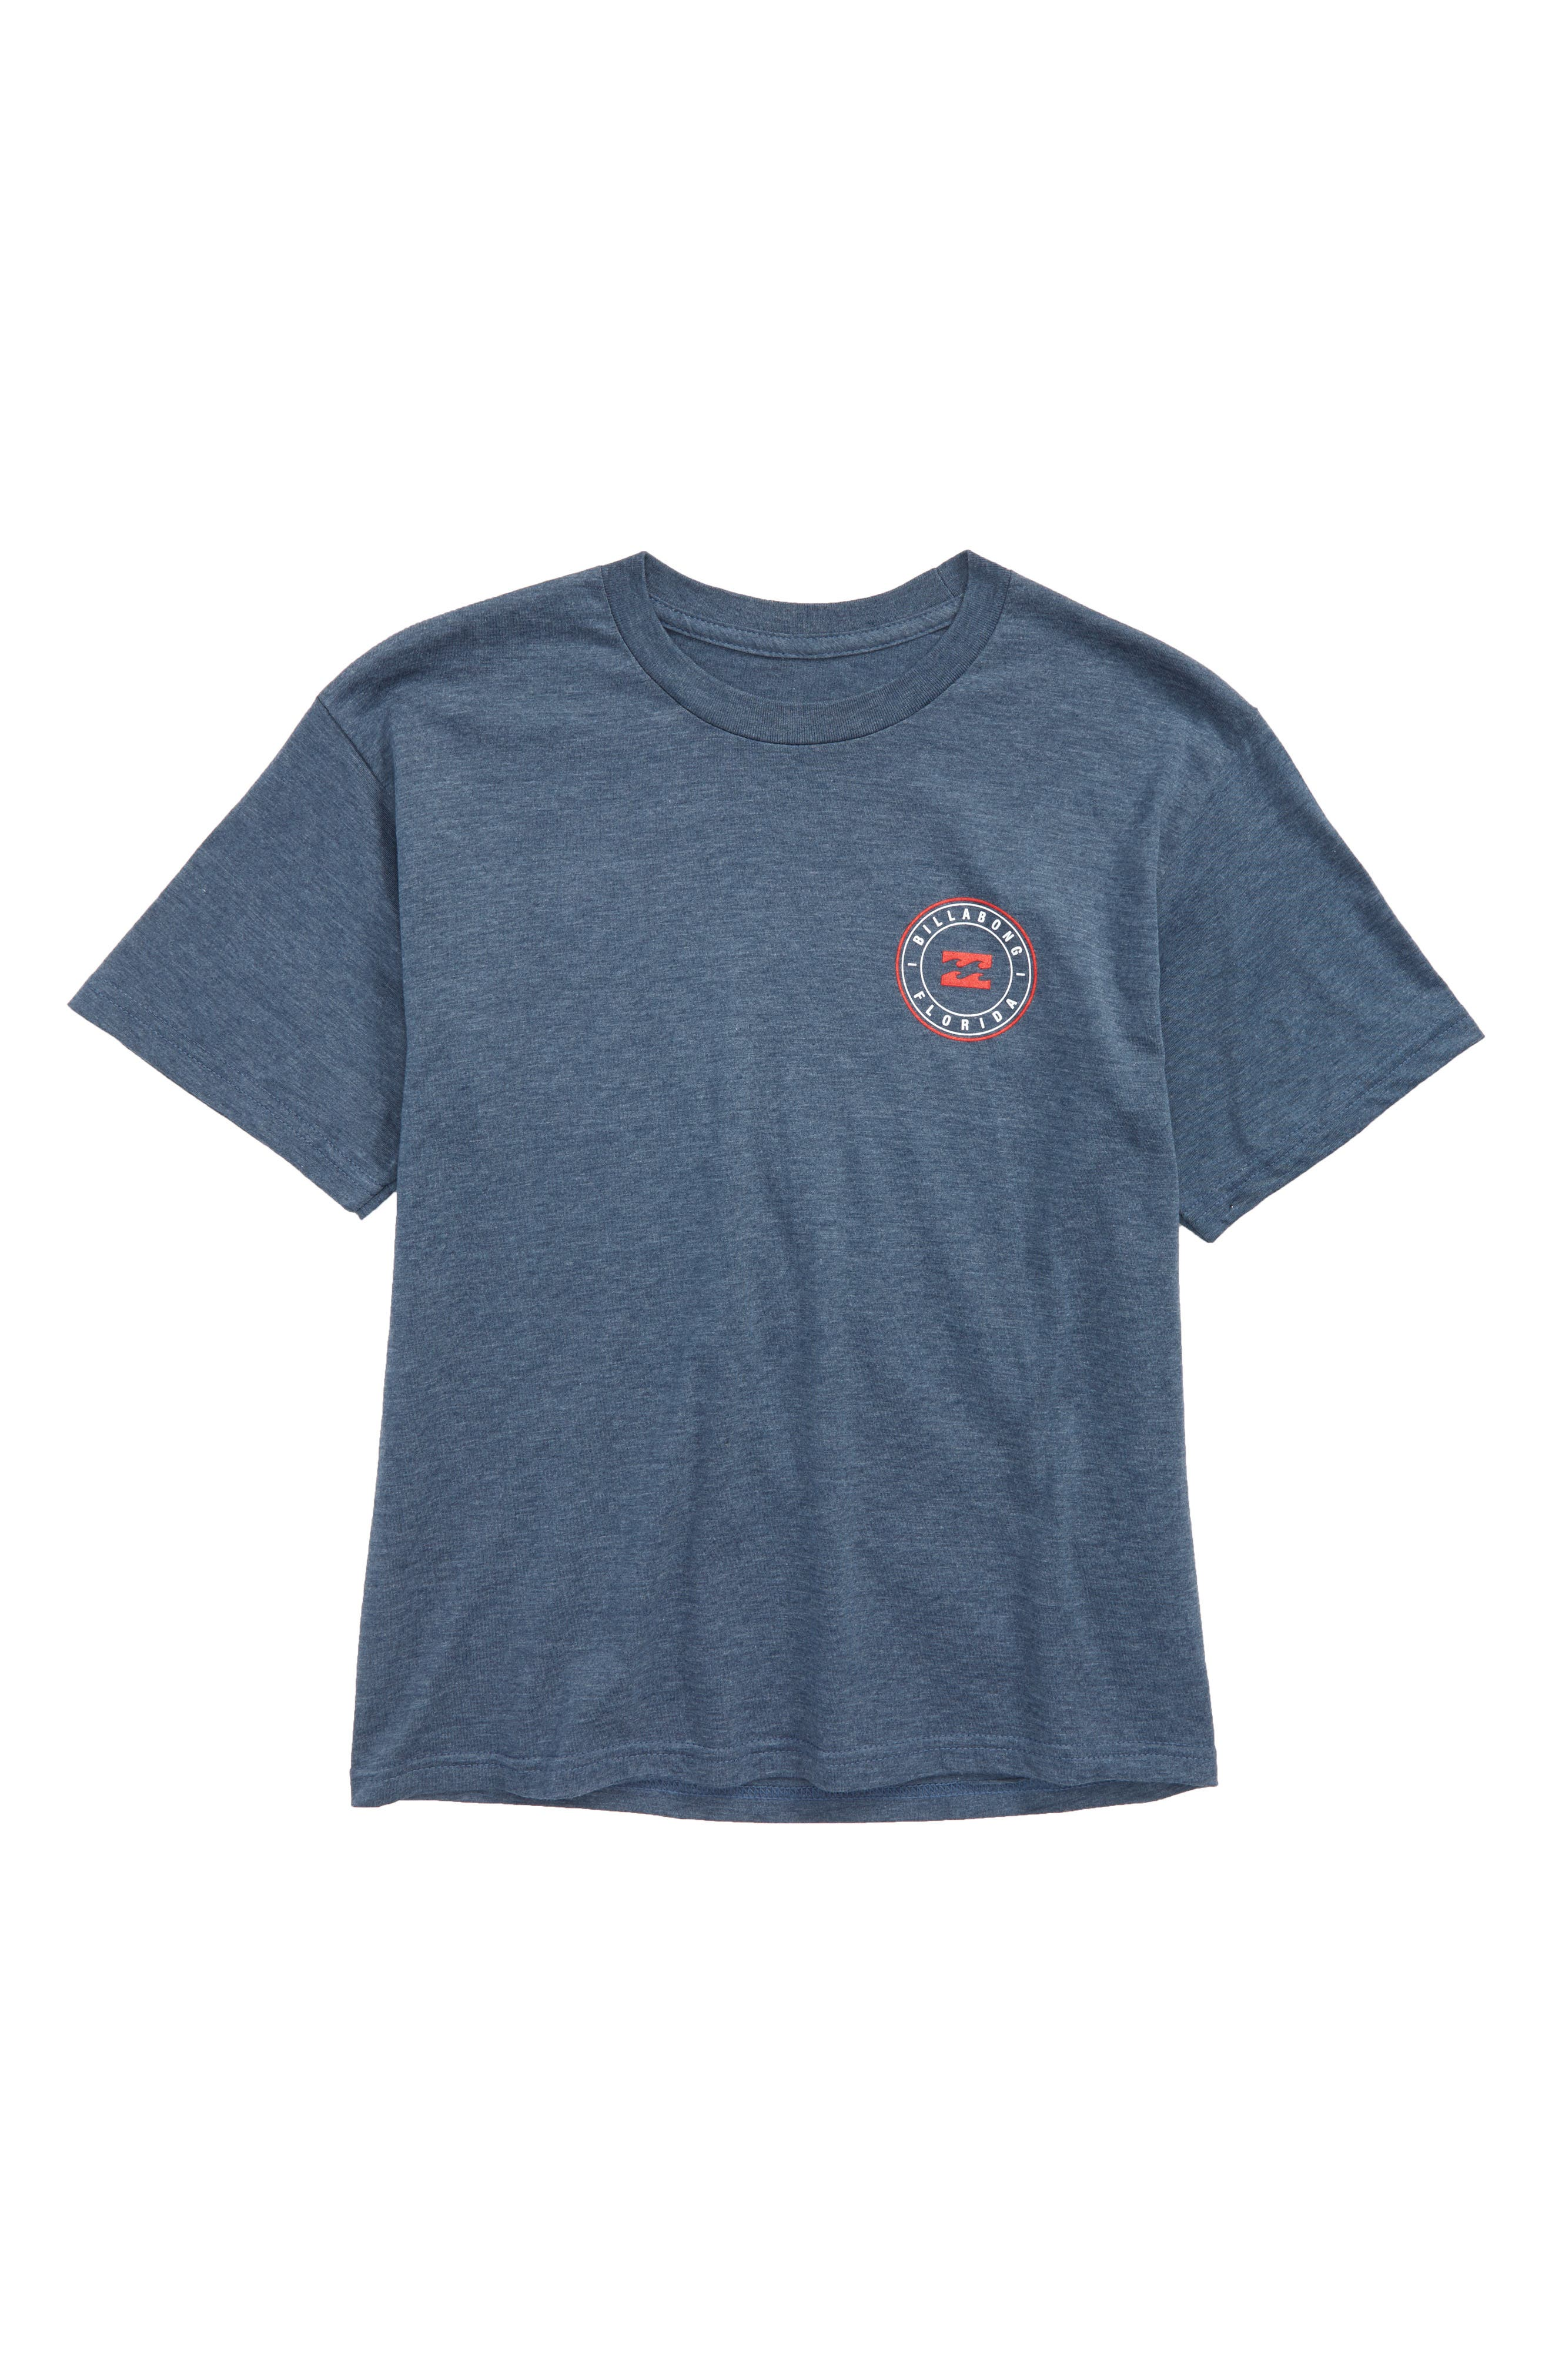 Native Rotor FL T-Shirt,                         Main,                         color, 404